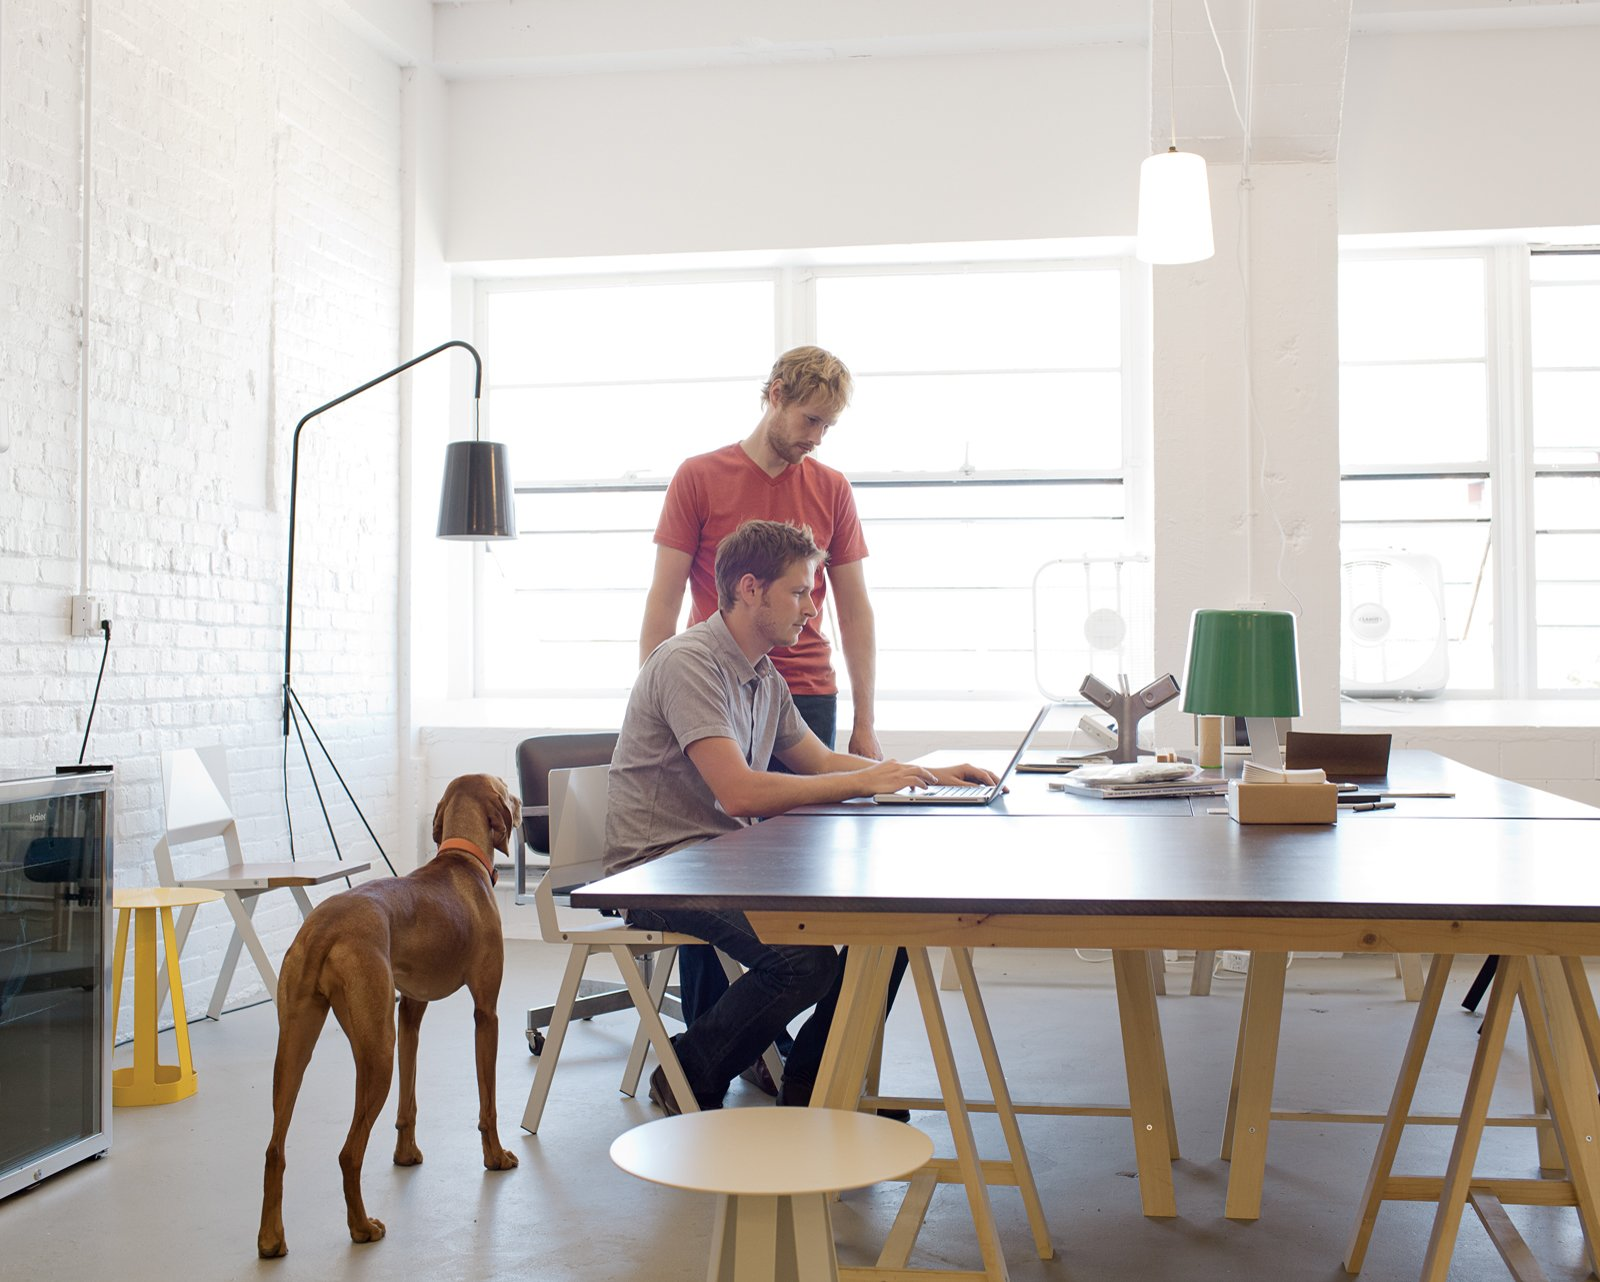 #workspace #office #interior #inside #window #seatingdesign #interiordesign #desk #lighting #flow #chairs #stools #dog #lamp #misewellstudio   Photo by Daniel Shea  Dogs Who Love Modern Design from Furniture